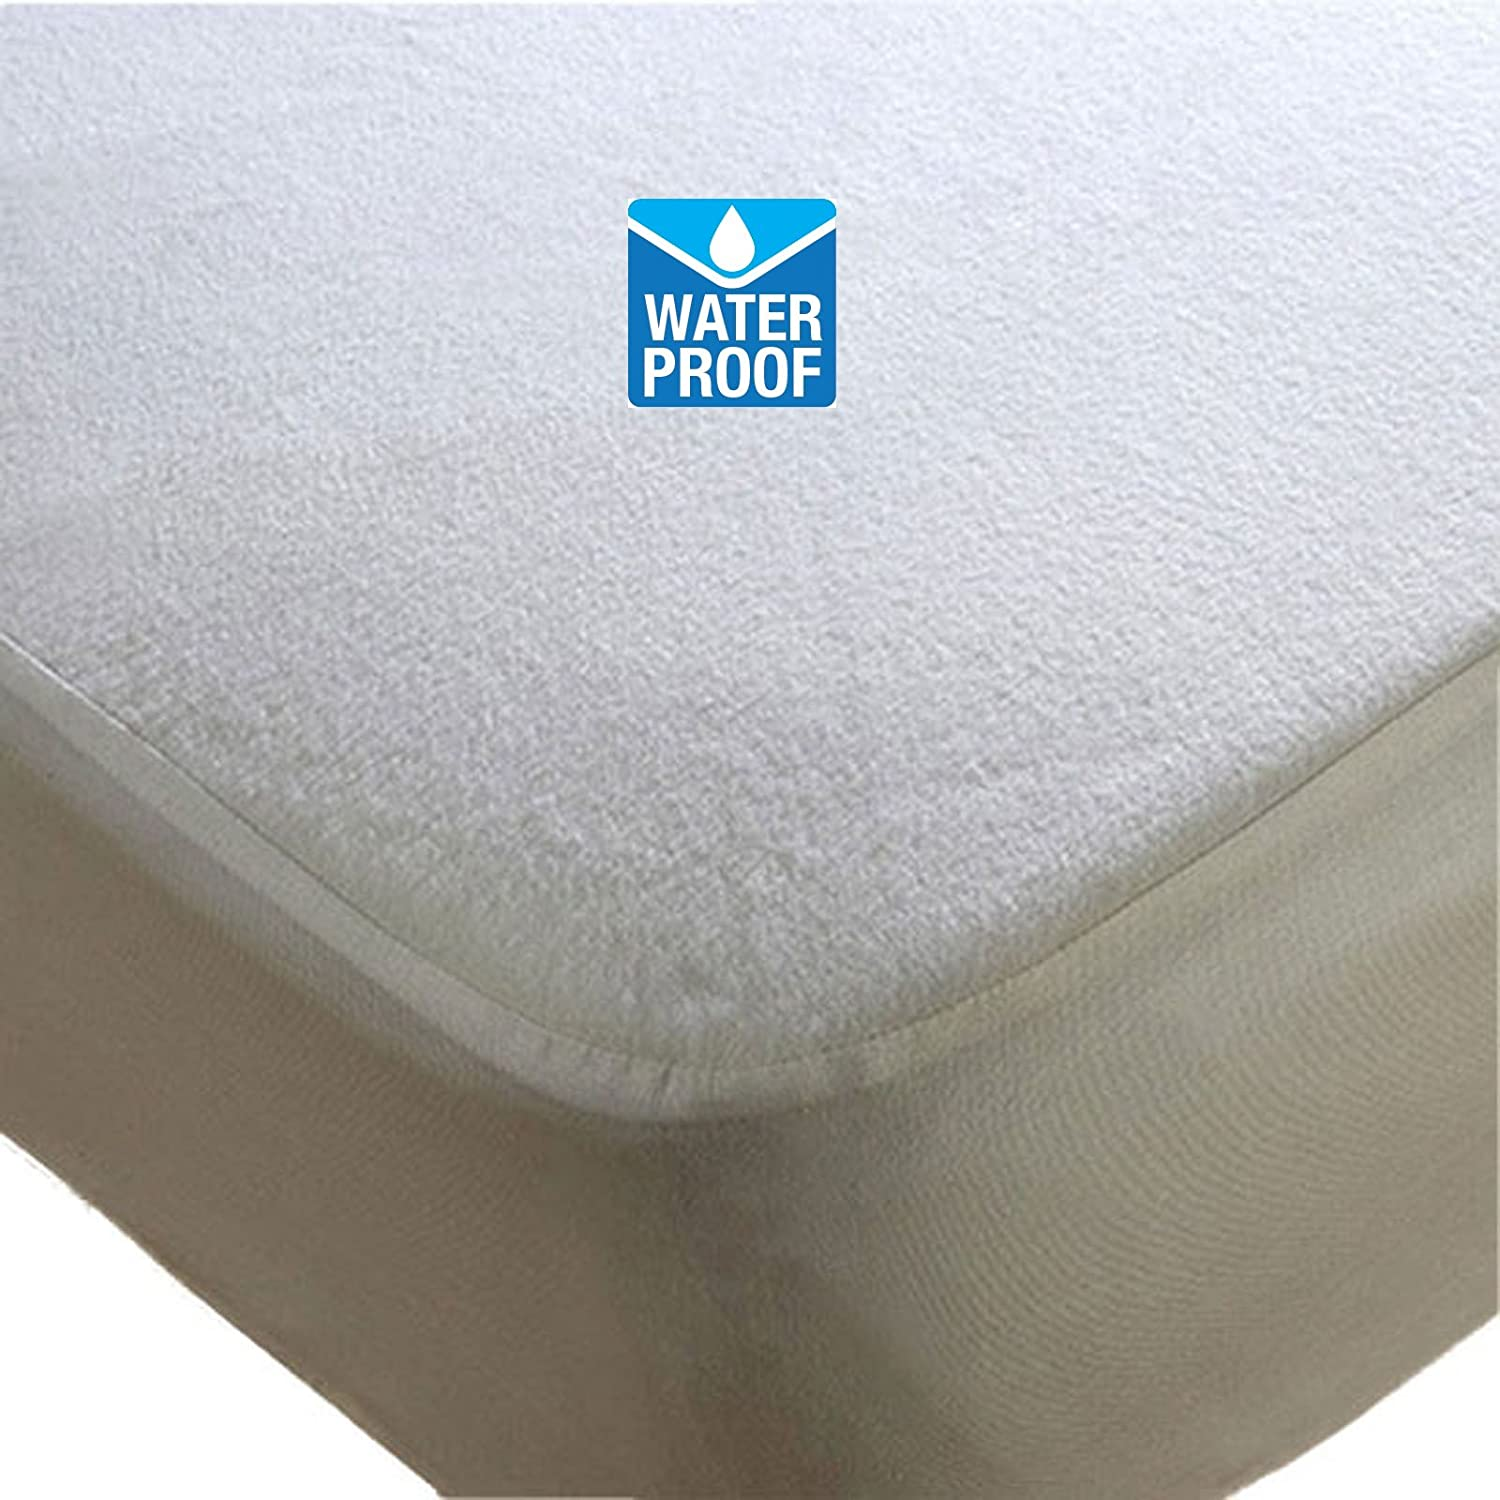 WATERPROOF TERRY TOWEL MATTRESS PROTECTOR FITTED SHEET BED COVER (PILLOW PROTECTOR PAIR) NIGHTS